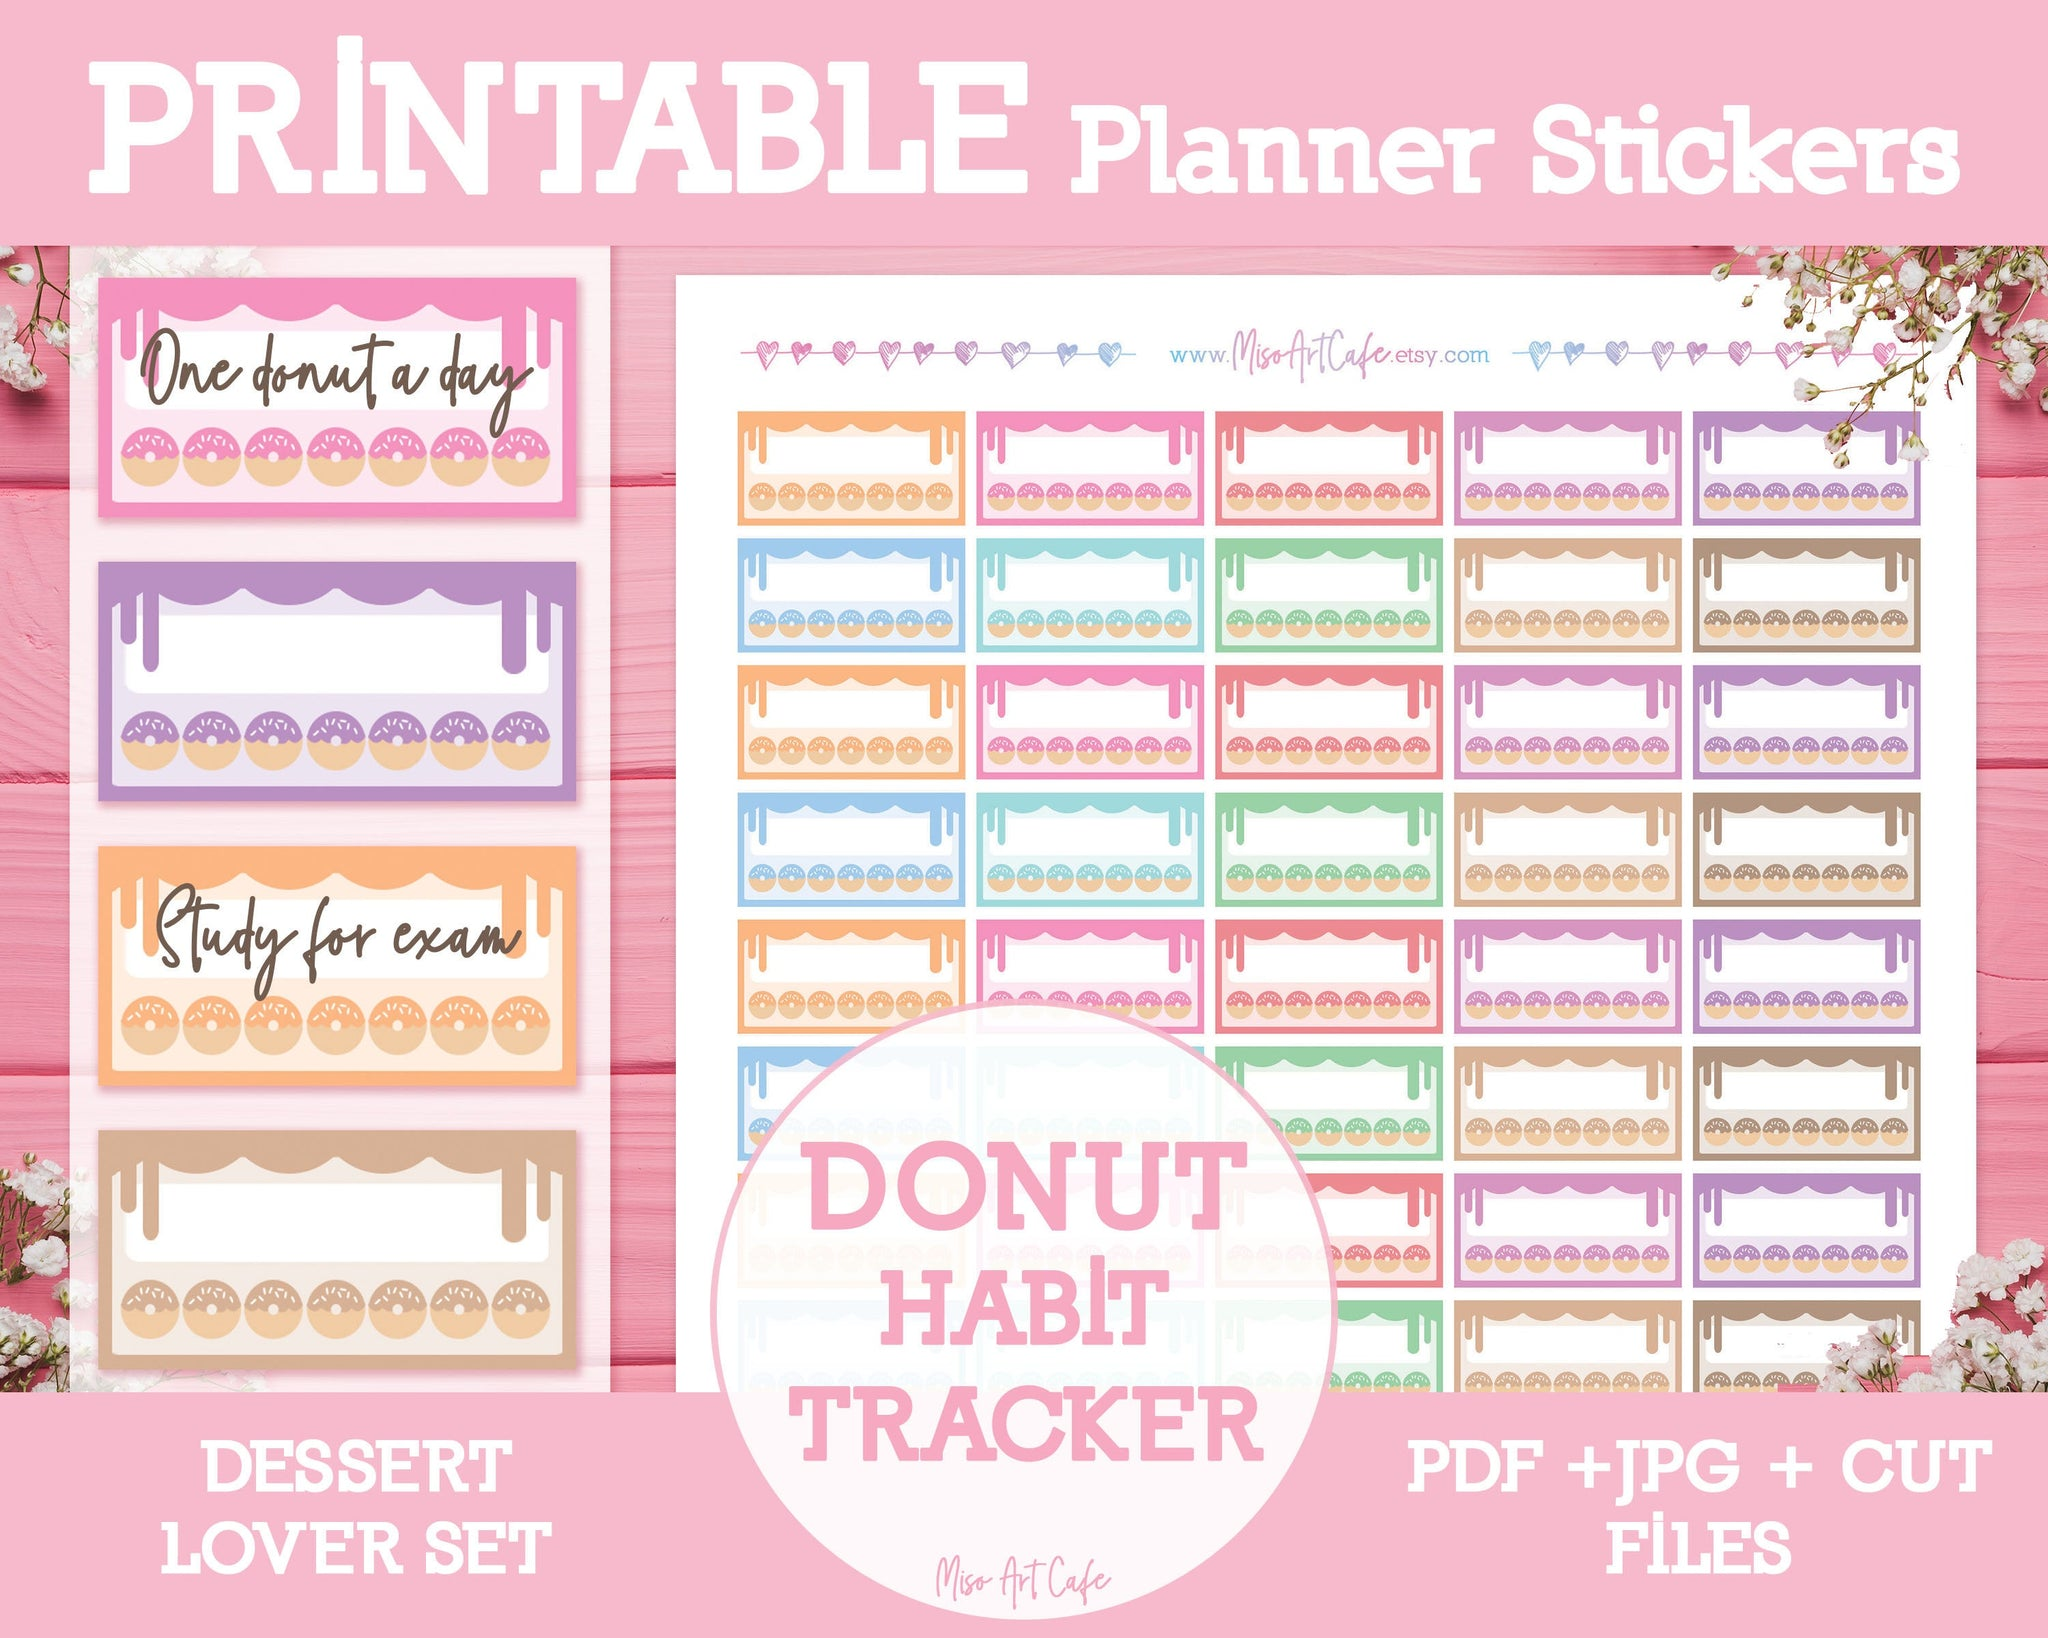 Printable Weekly Habit Trackers - Dessert Lover Planner Stickers - Miso Art Cafe Stickers for Planners